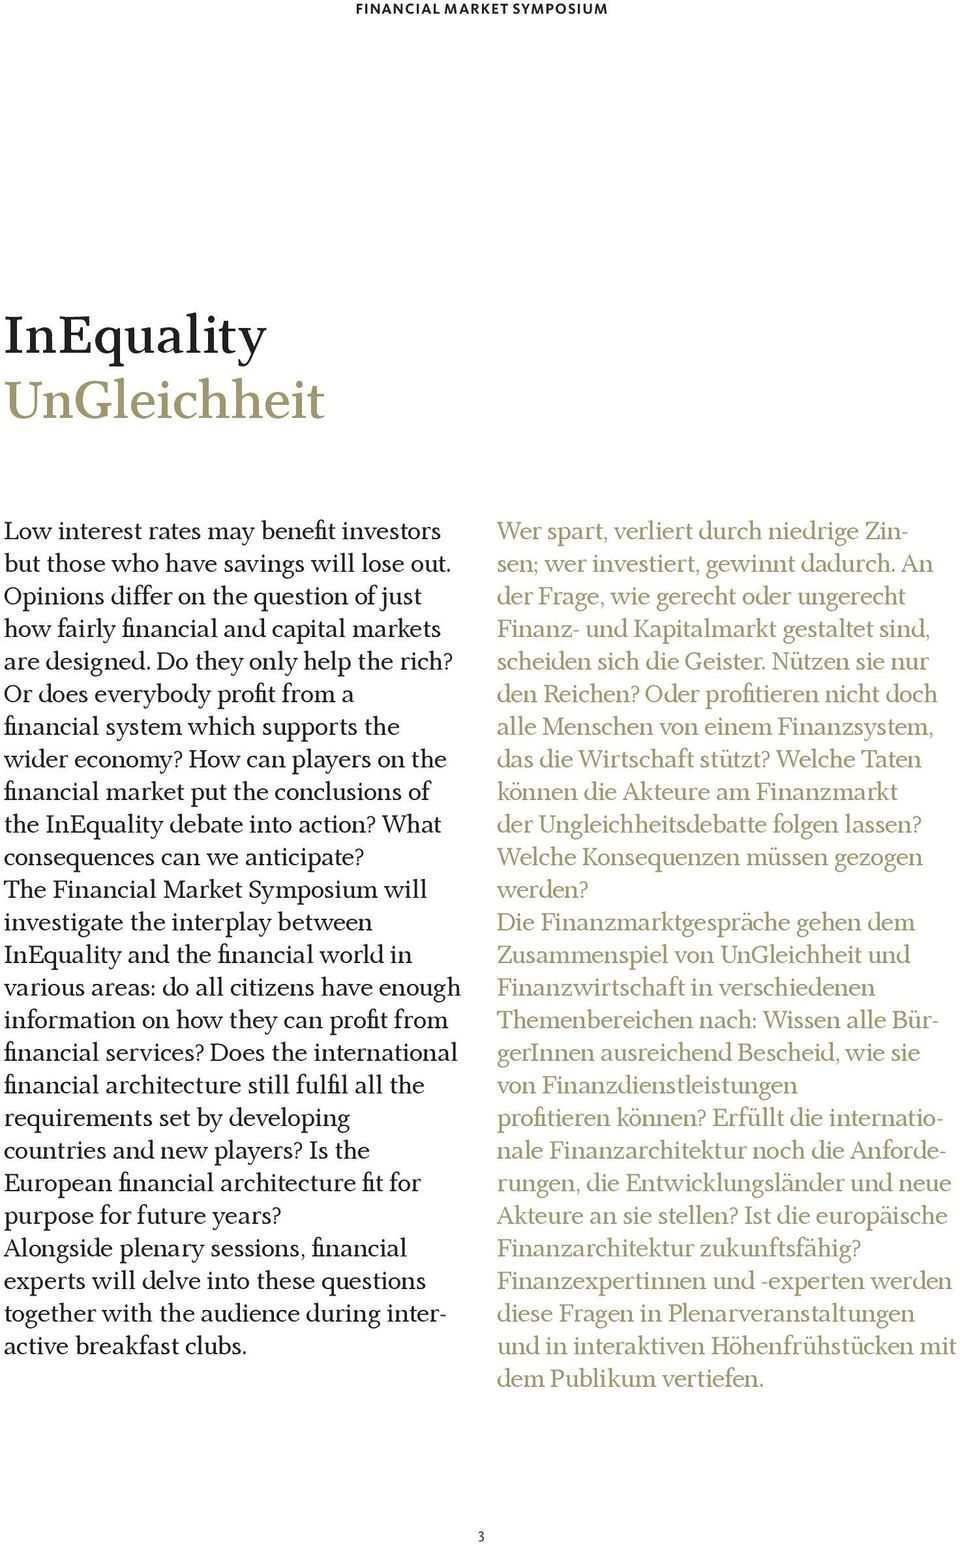 Or does everybody profit from a financial system which supports the wider economy? How can players on the financial market put the conclusions of the InEquality debate into action?